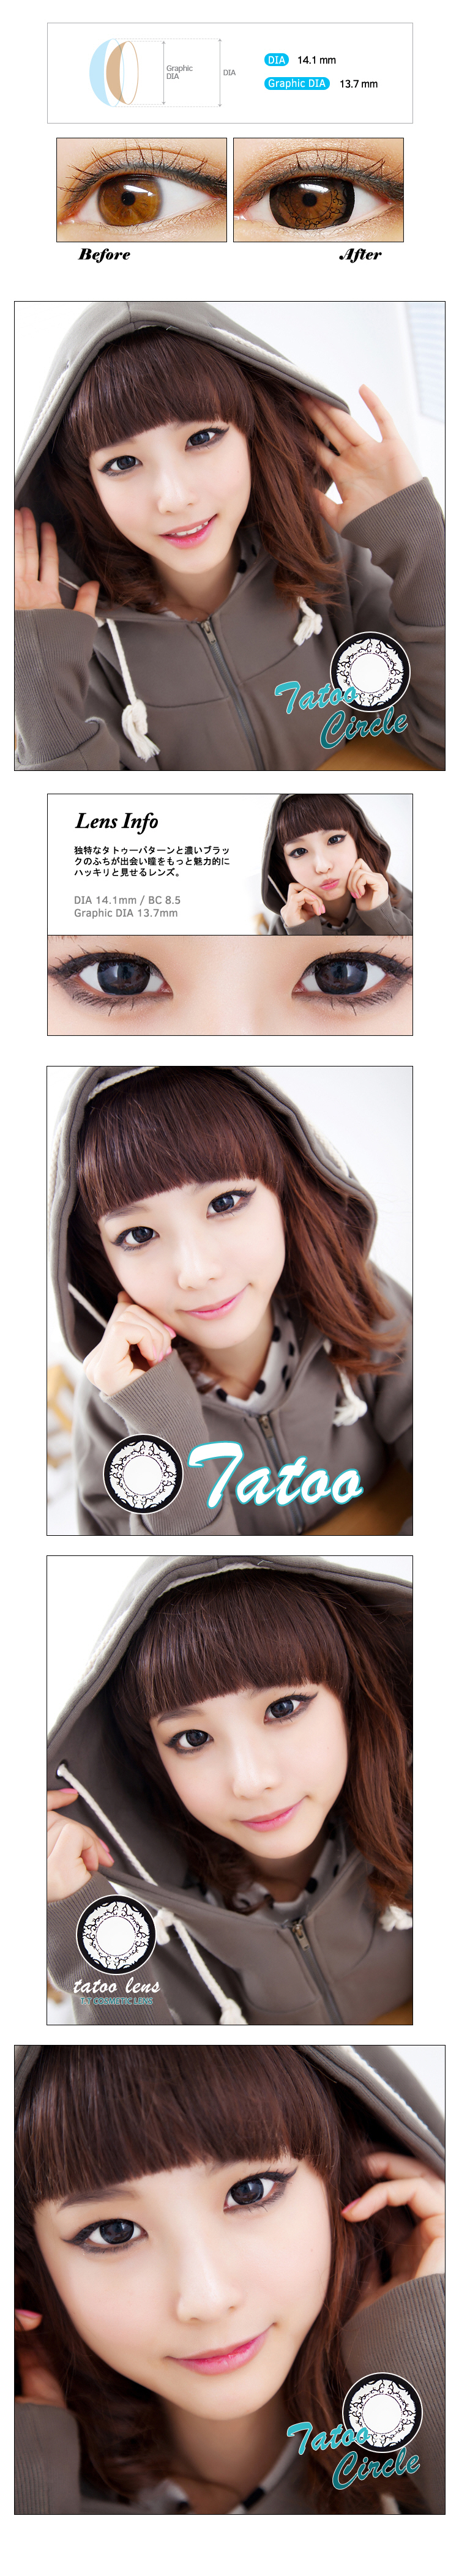 タトゥー サークル (Tattoo Circle) DIA 14.0mm